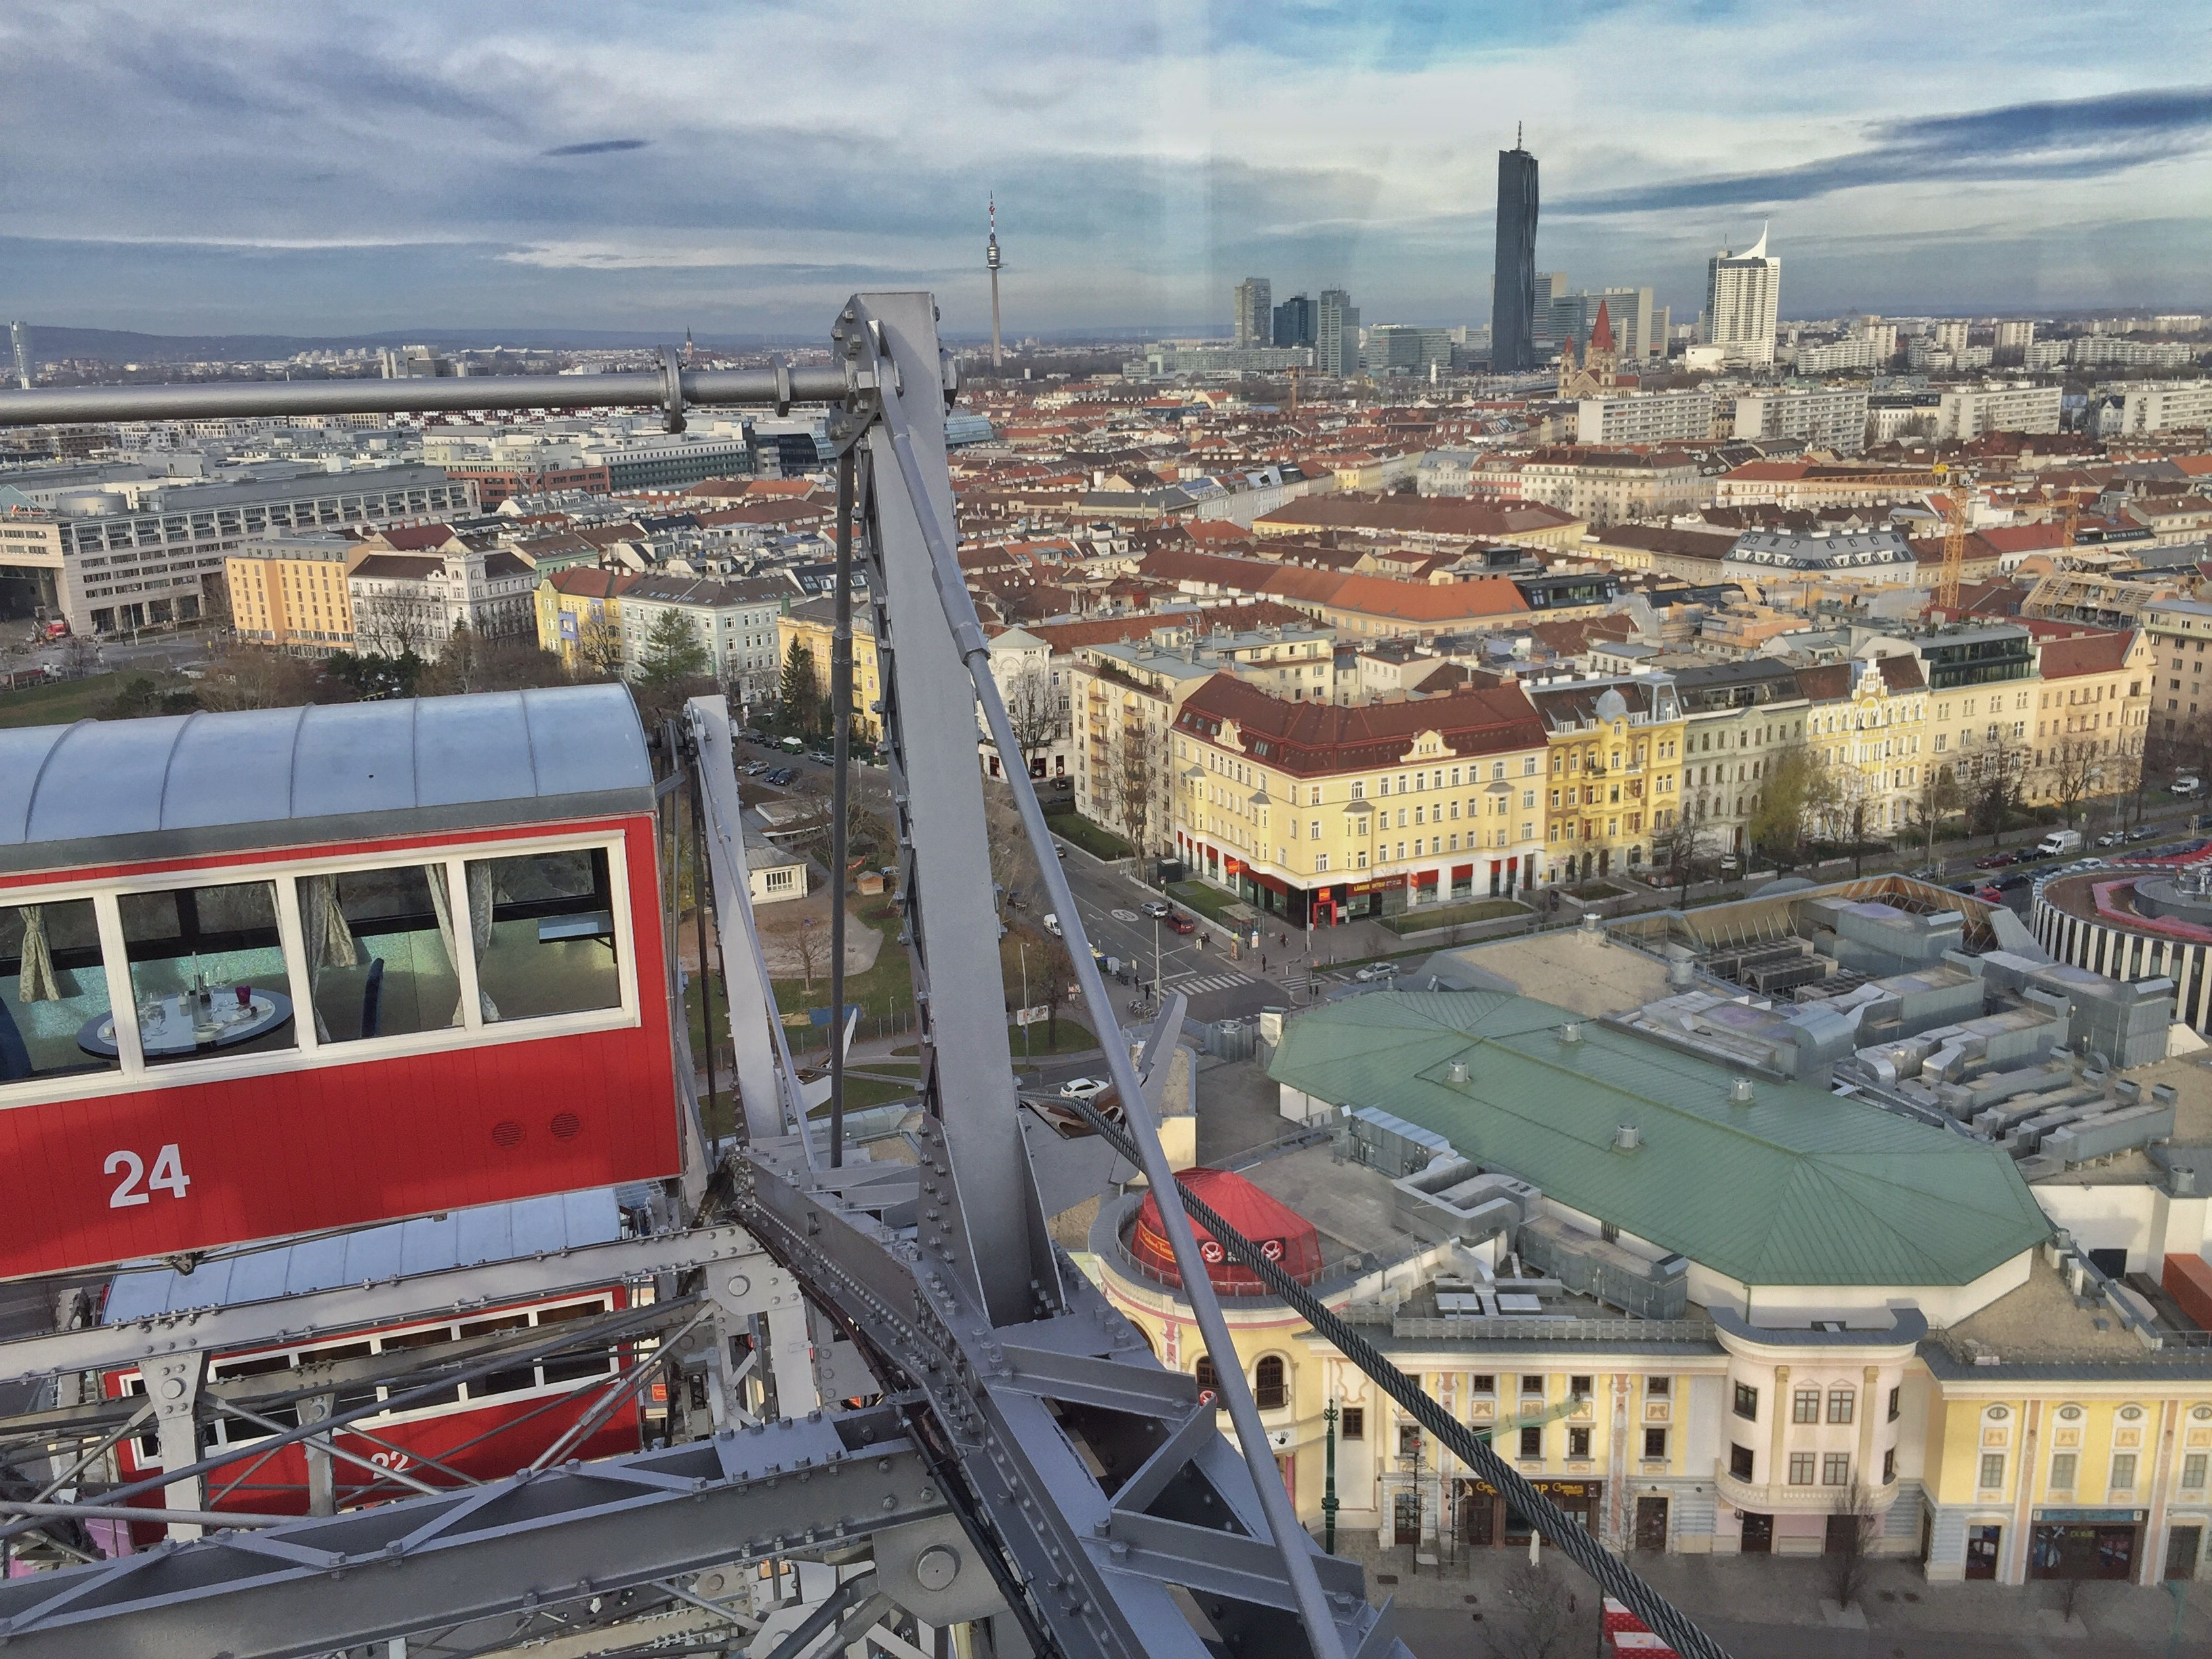 Views over Vienna from the Wiener Riesenrad - Giant Ferris Wheel